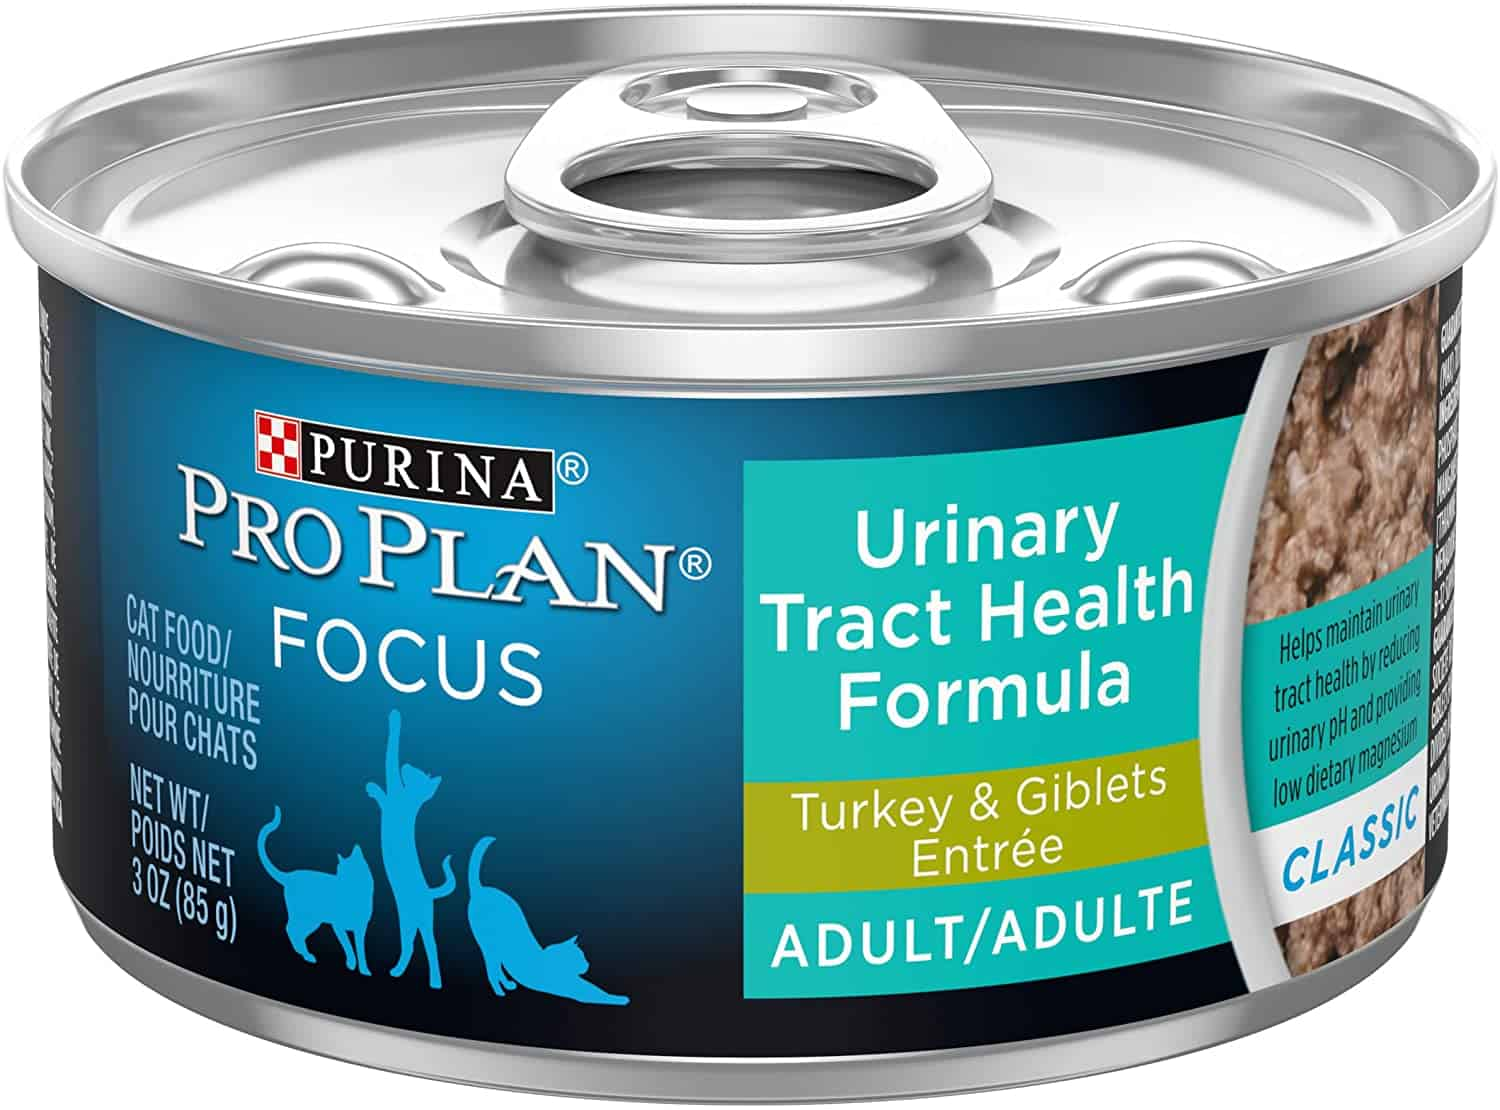 2020 Purina Pro Plan Cat Food Review: Advanced Nutrition for Cats 5